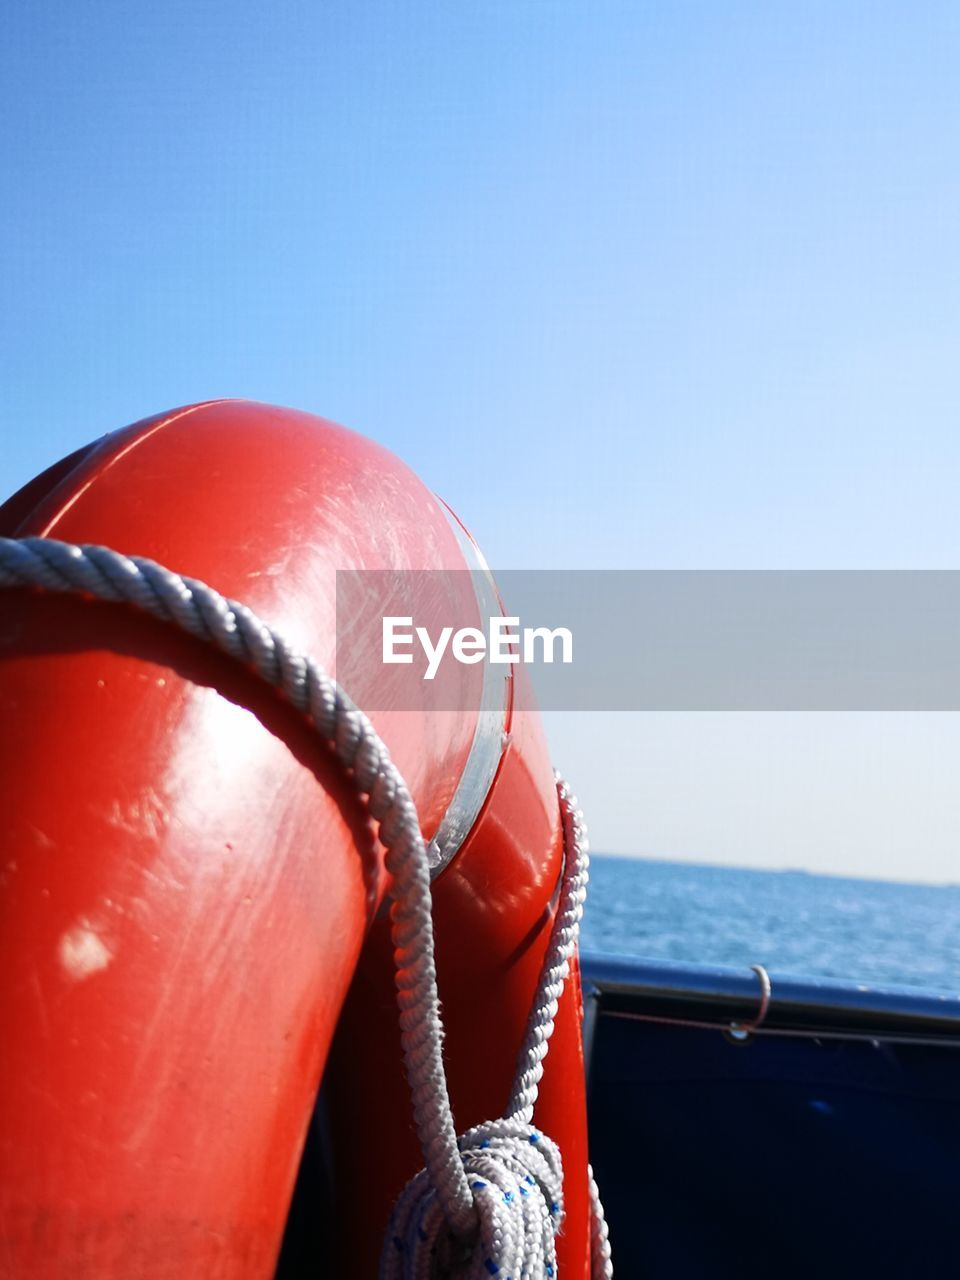 sea, water, sky, red, no people, nautical vessel, rope, clear sky, day, transportation, nature, close-up, buoy, safety, mode of transportation, blue, life belt, security, horizon over water, outdoors, inflatable